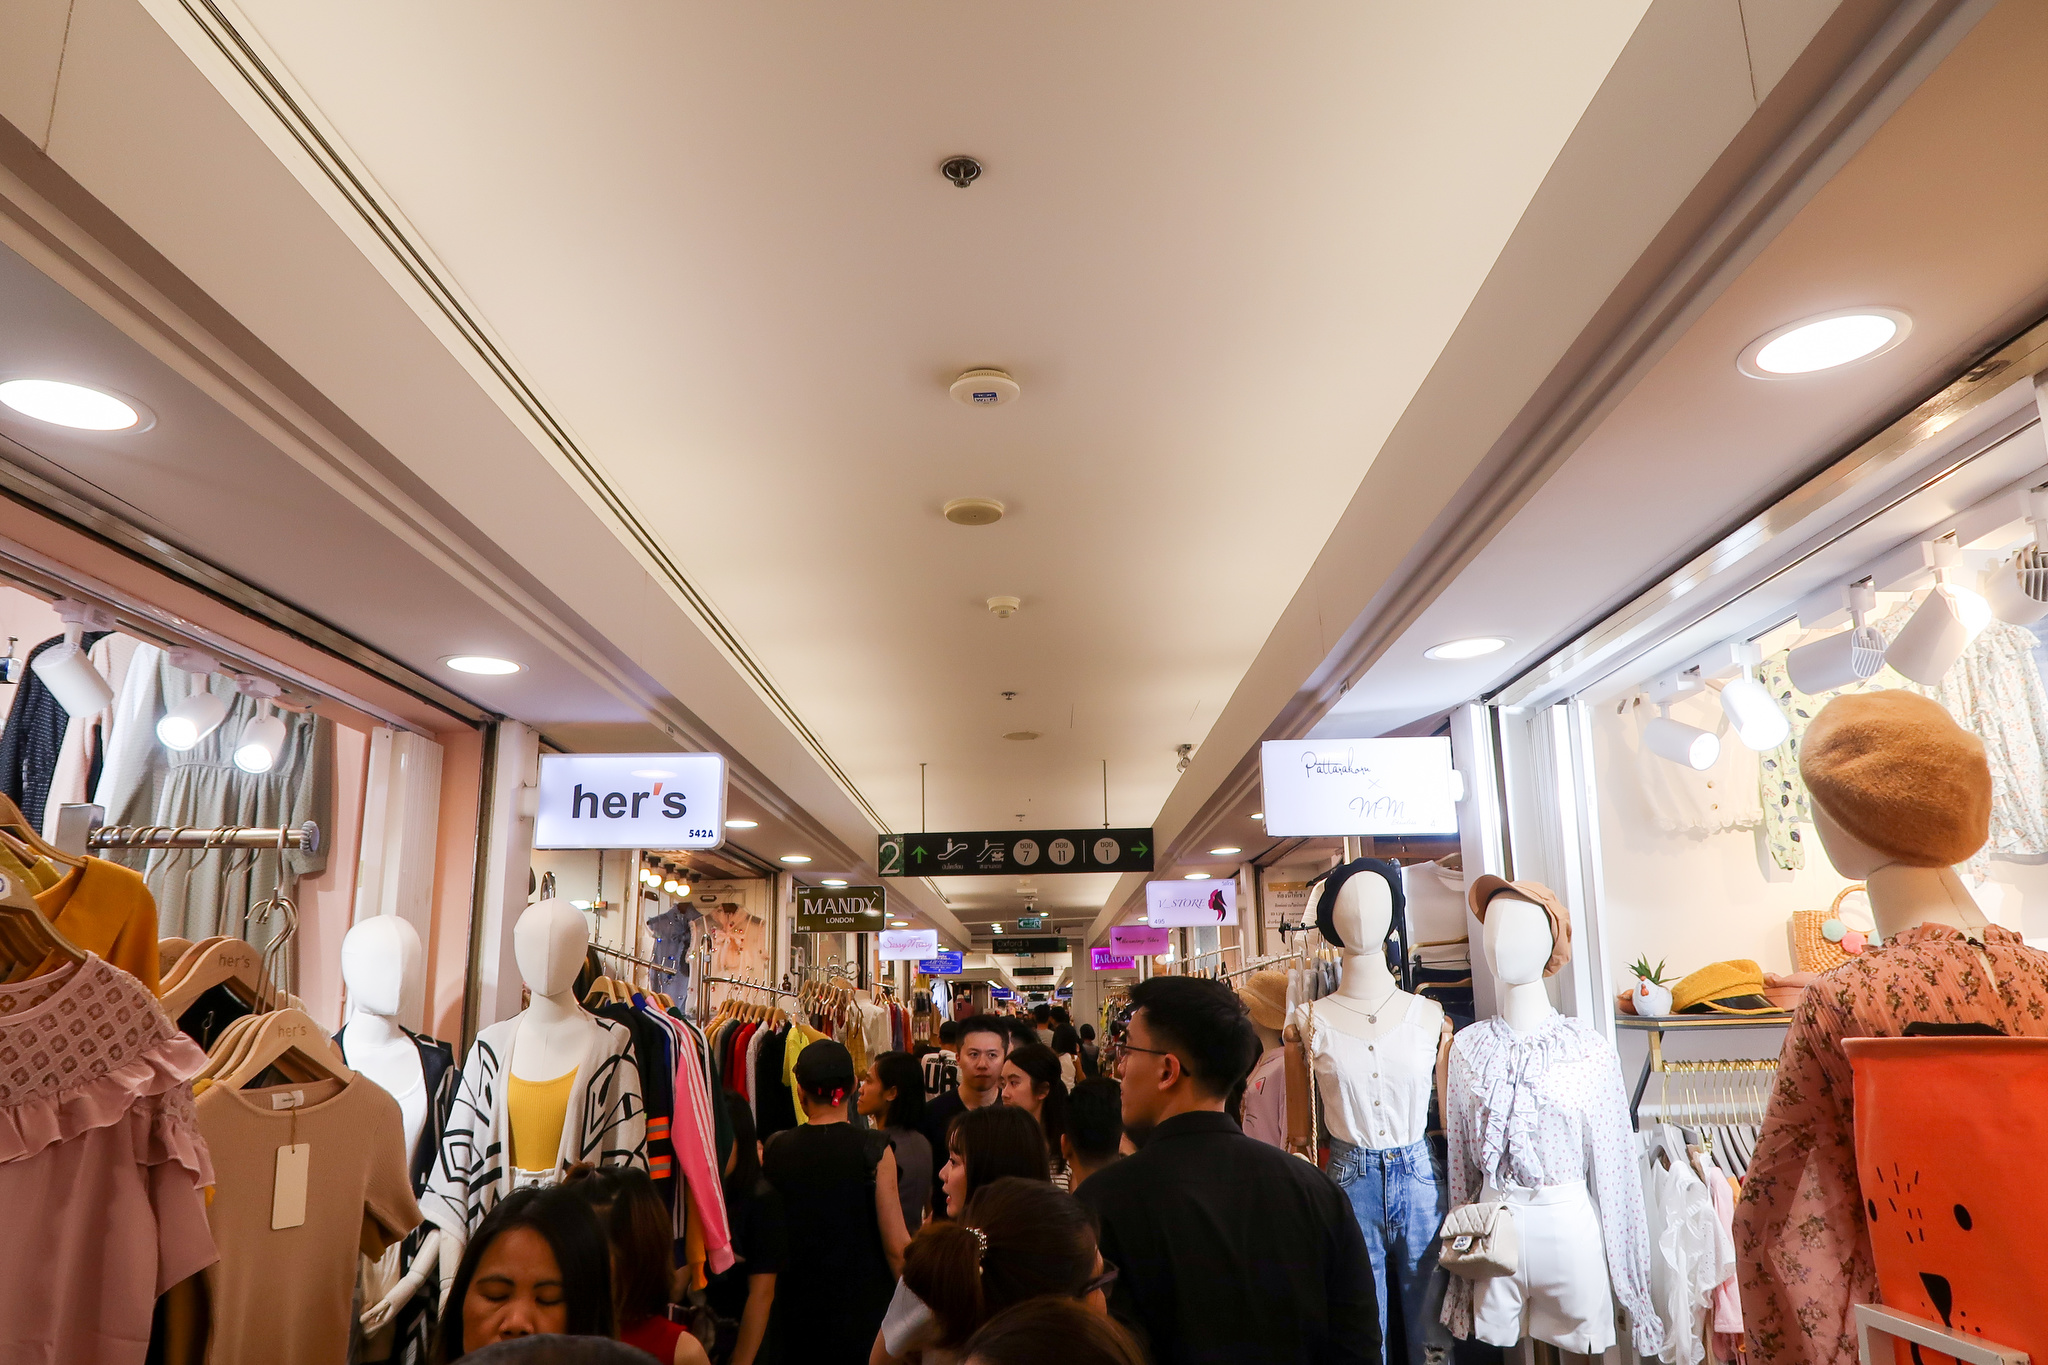 Inside the crowded Platinum Shopping Mall.